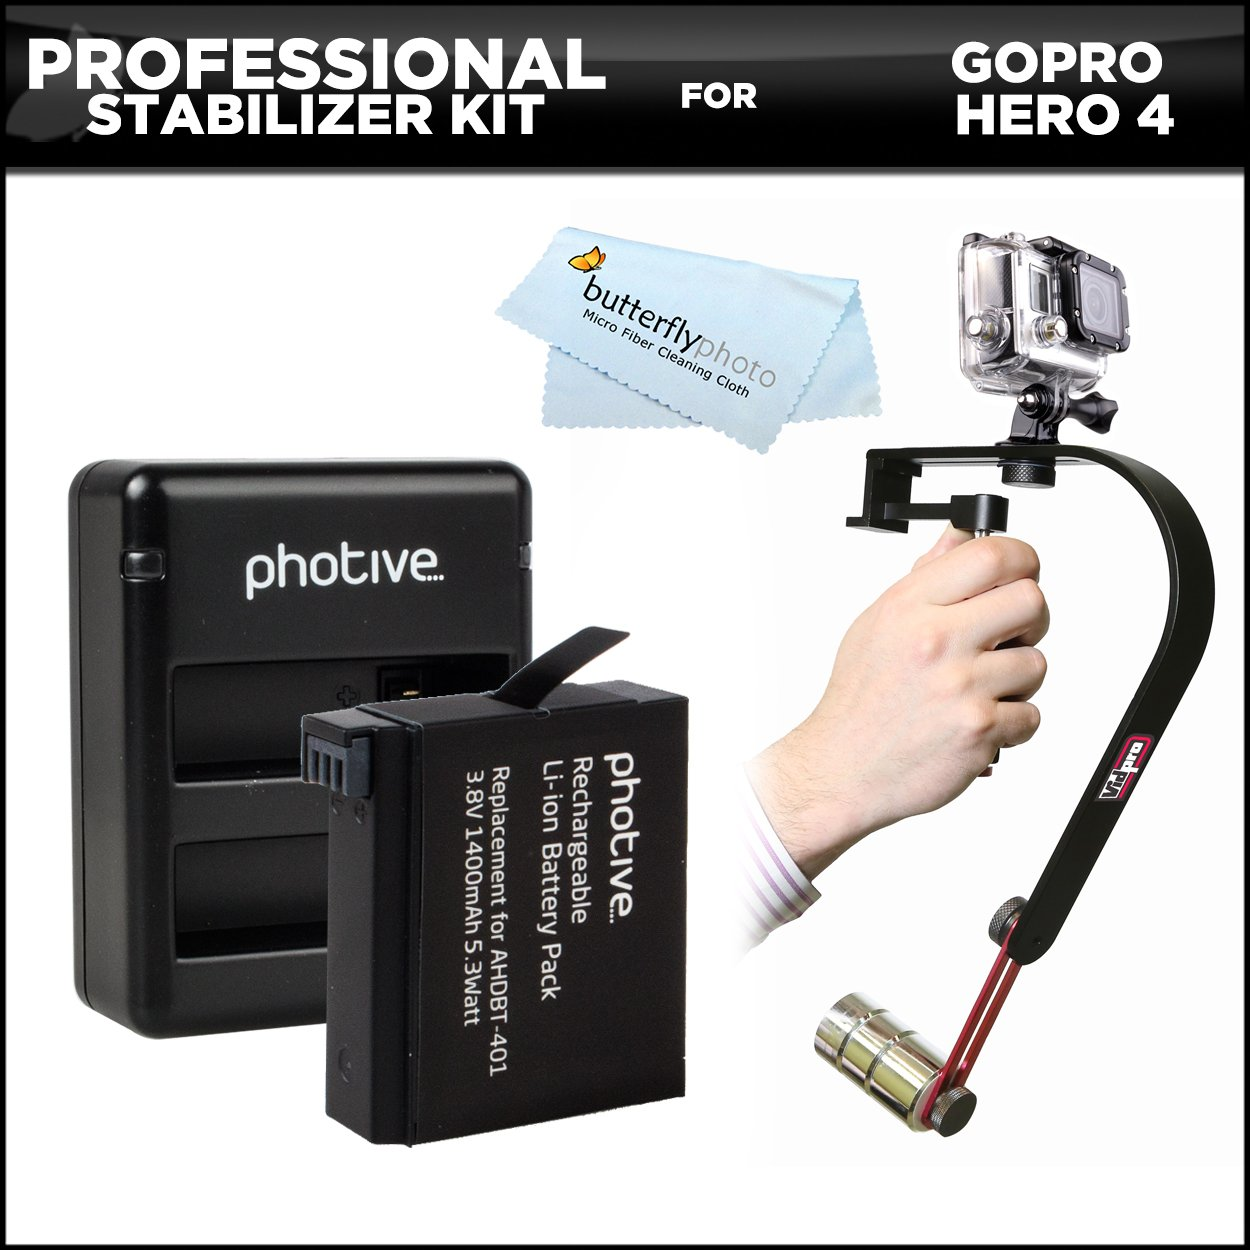 Professional Video Camcorder Stabilizer Kit For GoPro HERO4, Hero 4 Action Camera + Extended Replacement AHDBT-401 (1400 Mah) lithium-ion battery + Dual USB Battery Charger + MicroFiber Cleaning Cloth